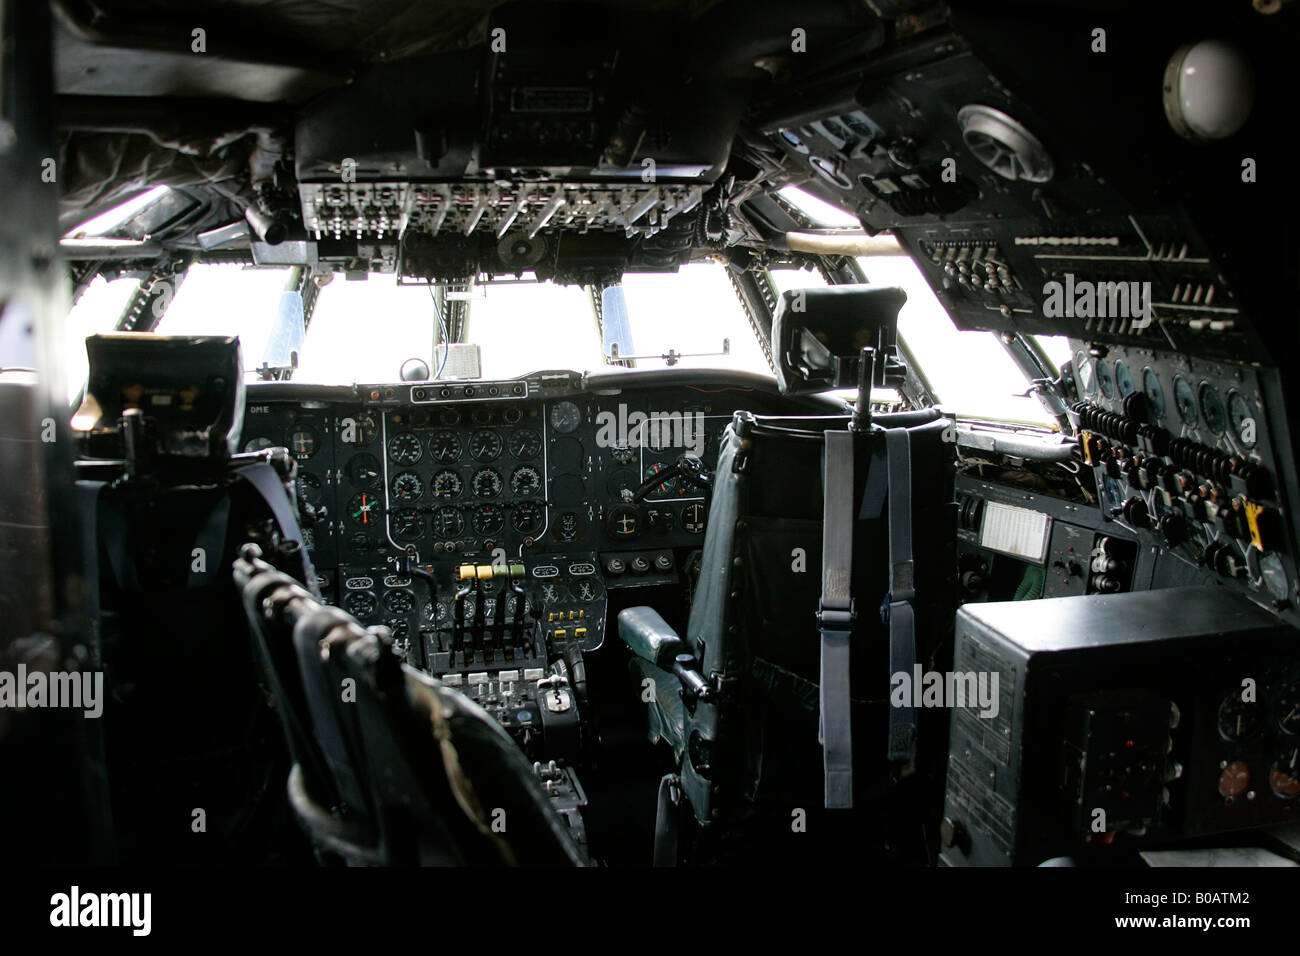 RAF SHACKLETON 1950's AIRCRAFT COCKPIT  -IMPERIAL WAR MUSEUM DUXFORD - Stock Image